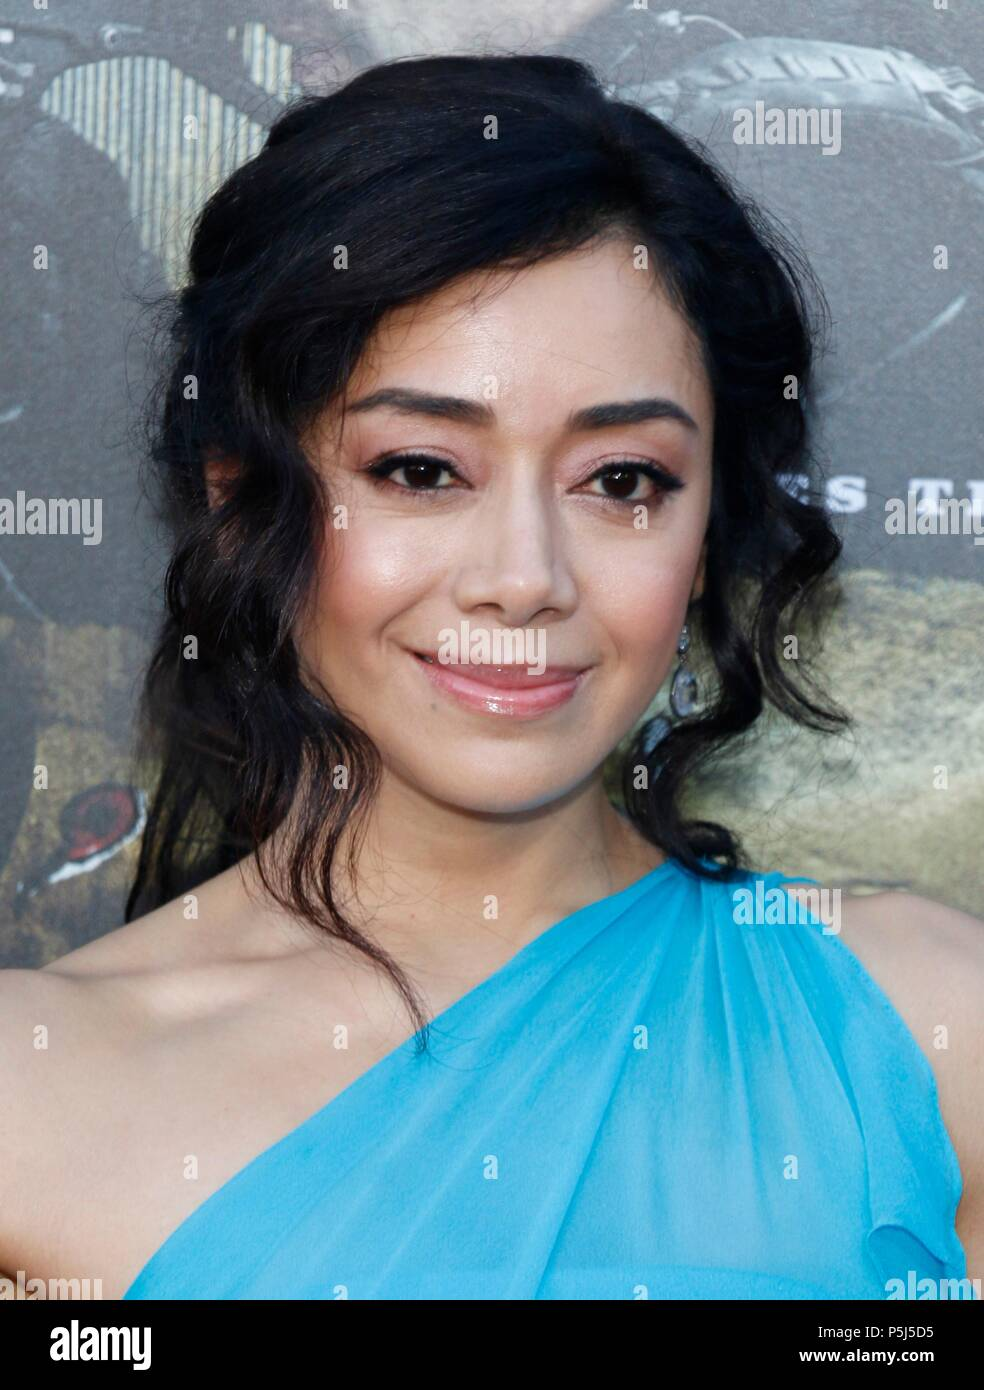 Los Angeles, CA, USA. 26th June, 2018. Aimee Garcia at arrivals for SICARIO: DAY OF THE SOLDADO Premiere, Regency Village Theatre - Westwood, Los Angeles, CA June 26, 2018. Credit: Elizabeth Goodenough/Everett Collection/Alamy Live News Stock Photo